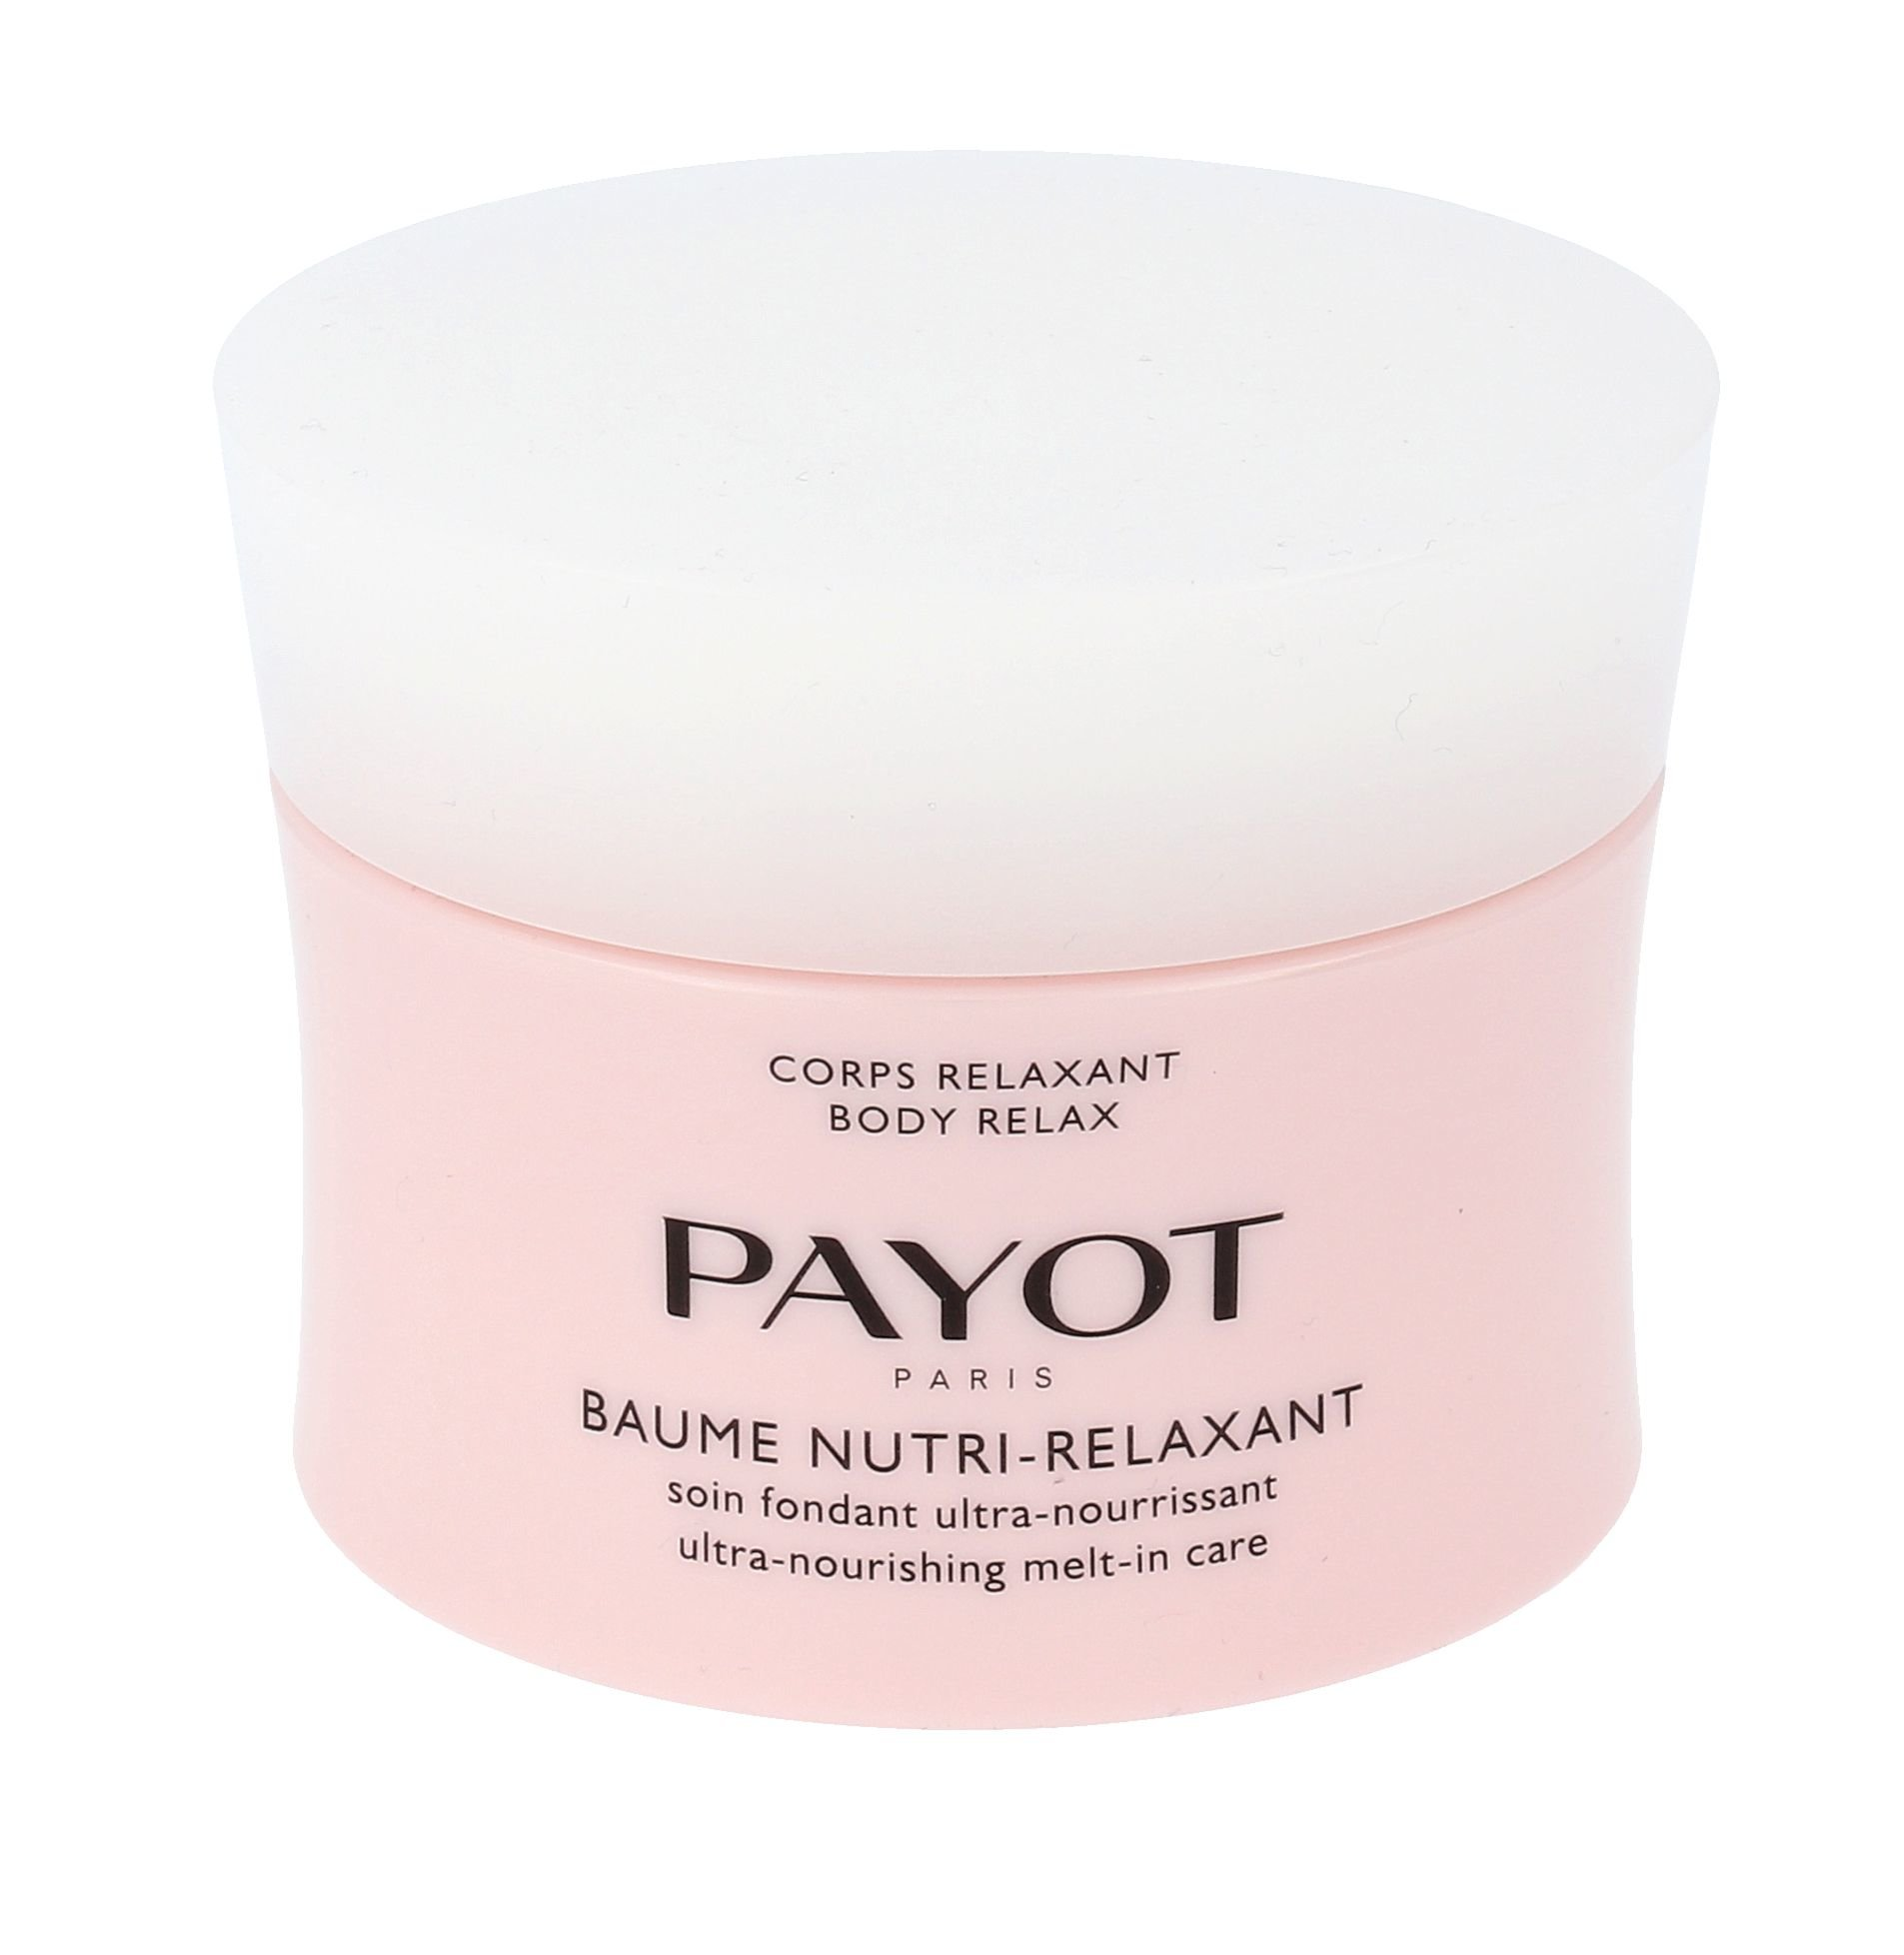 PAYOT Corps Relaxant Body Balm 200ml